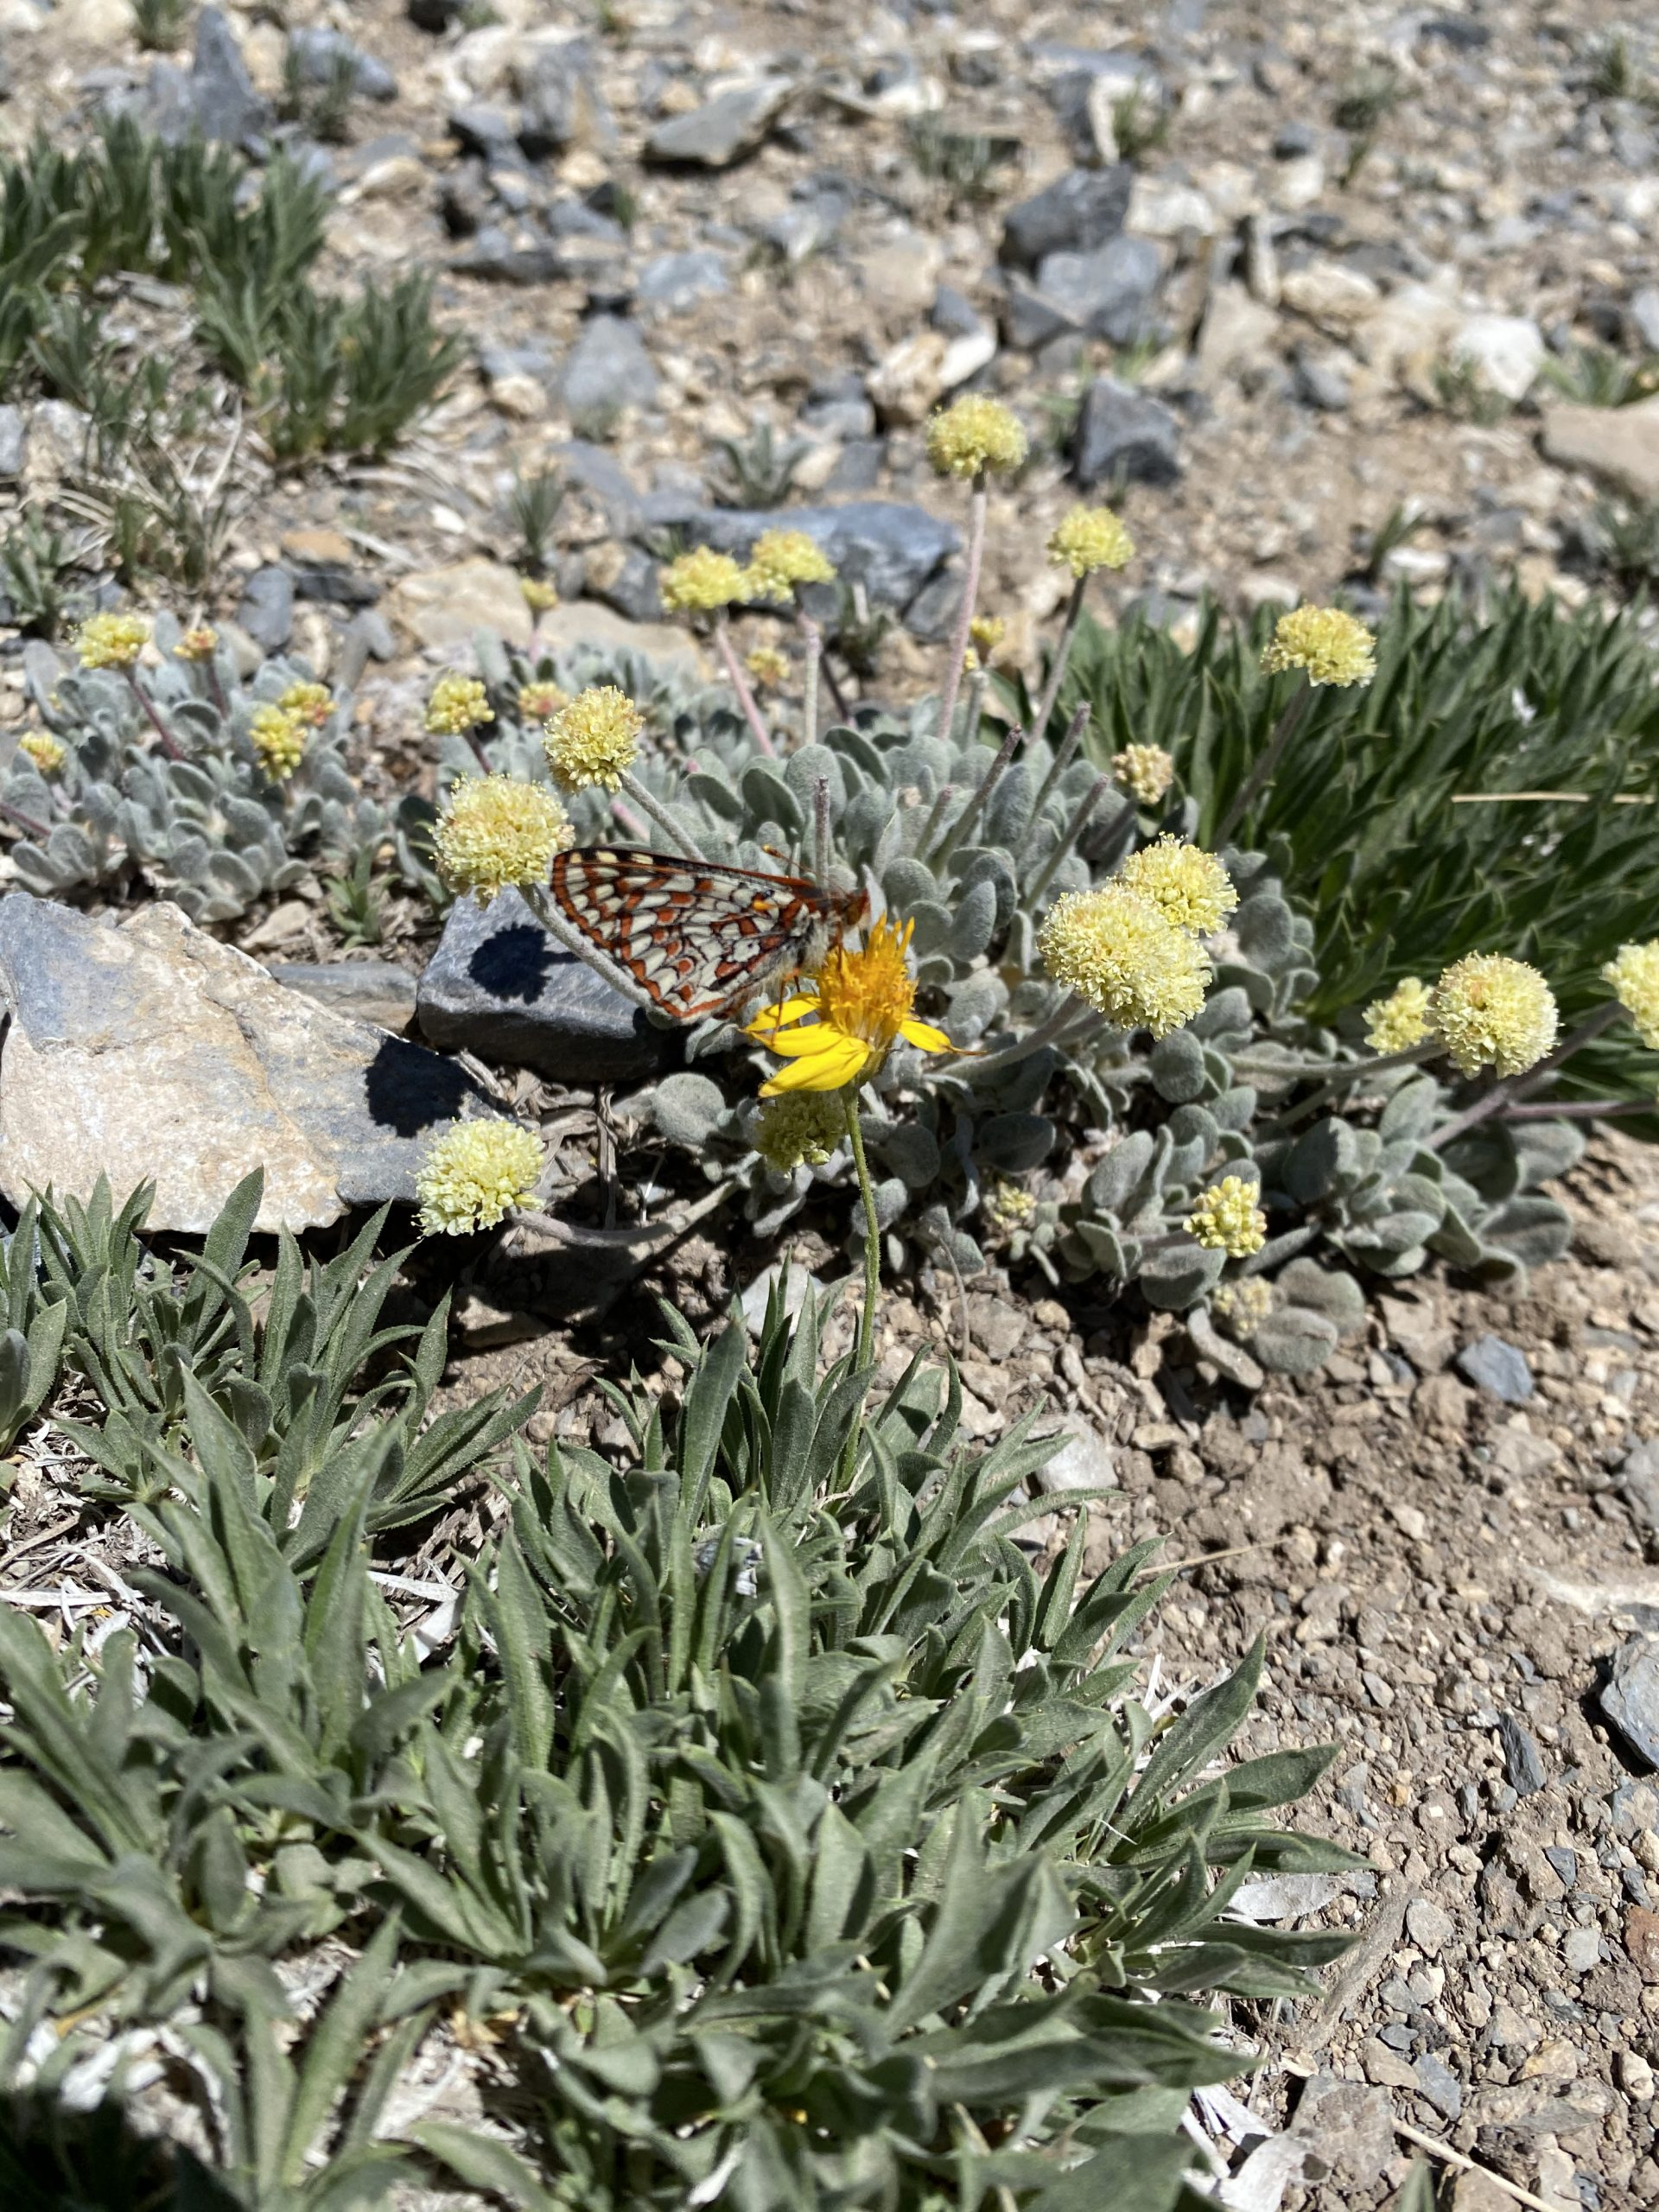 Butterfly pollinating a flower along with some other plants